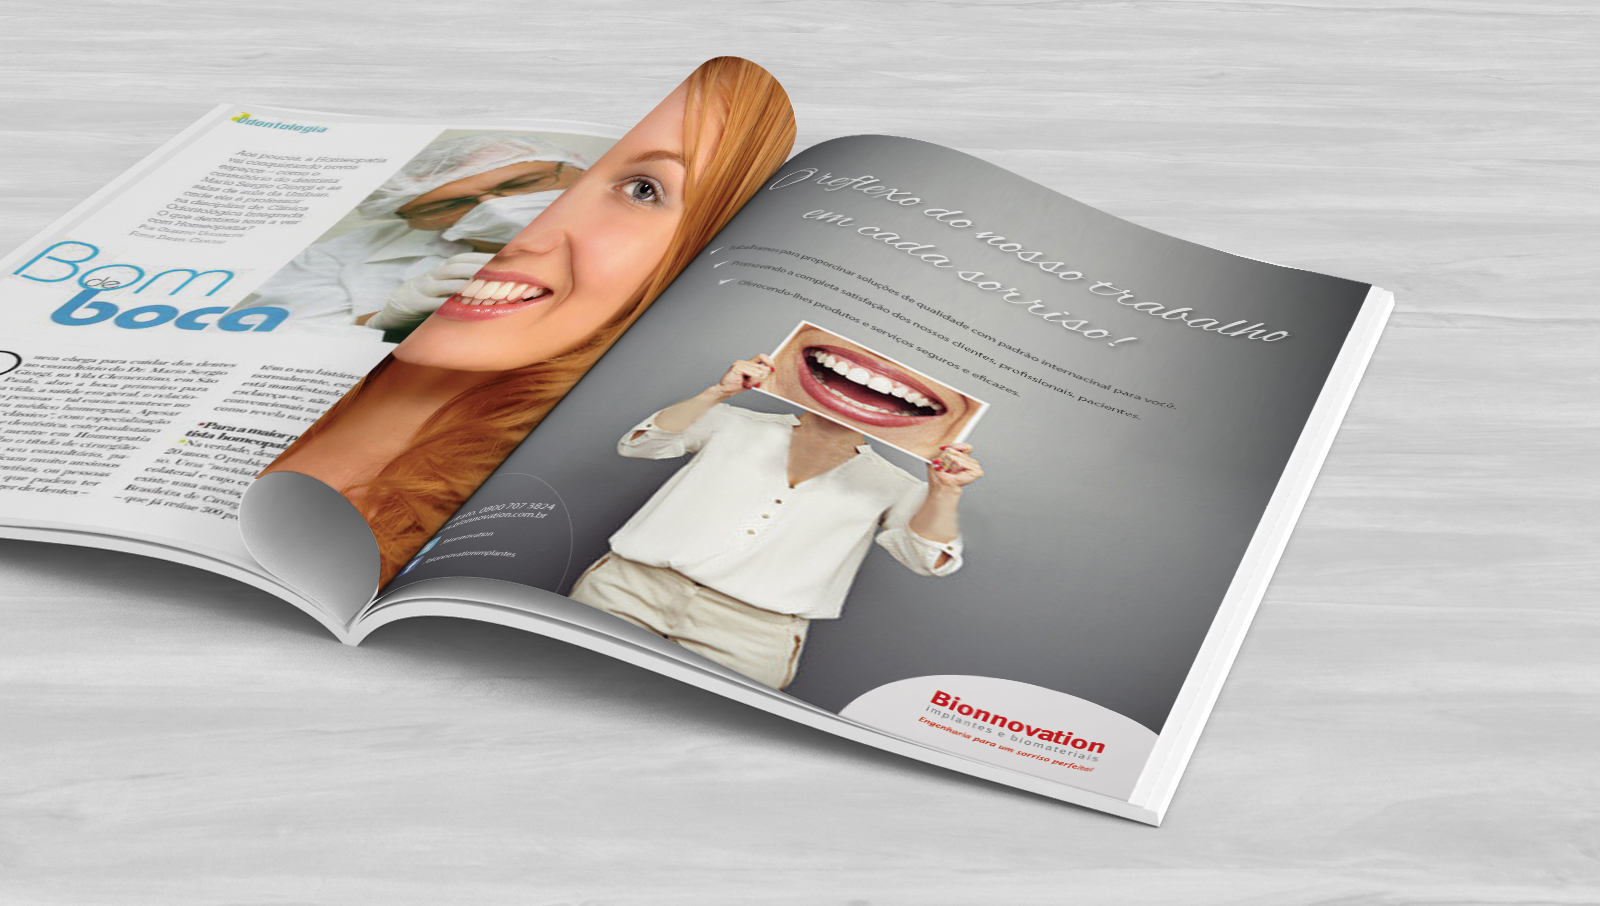 Revista Bionnovation